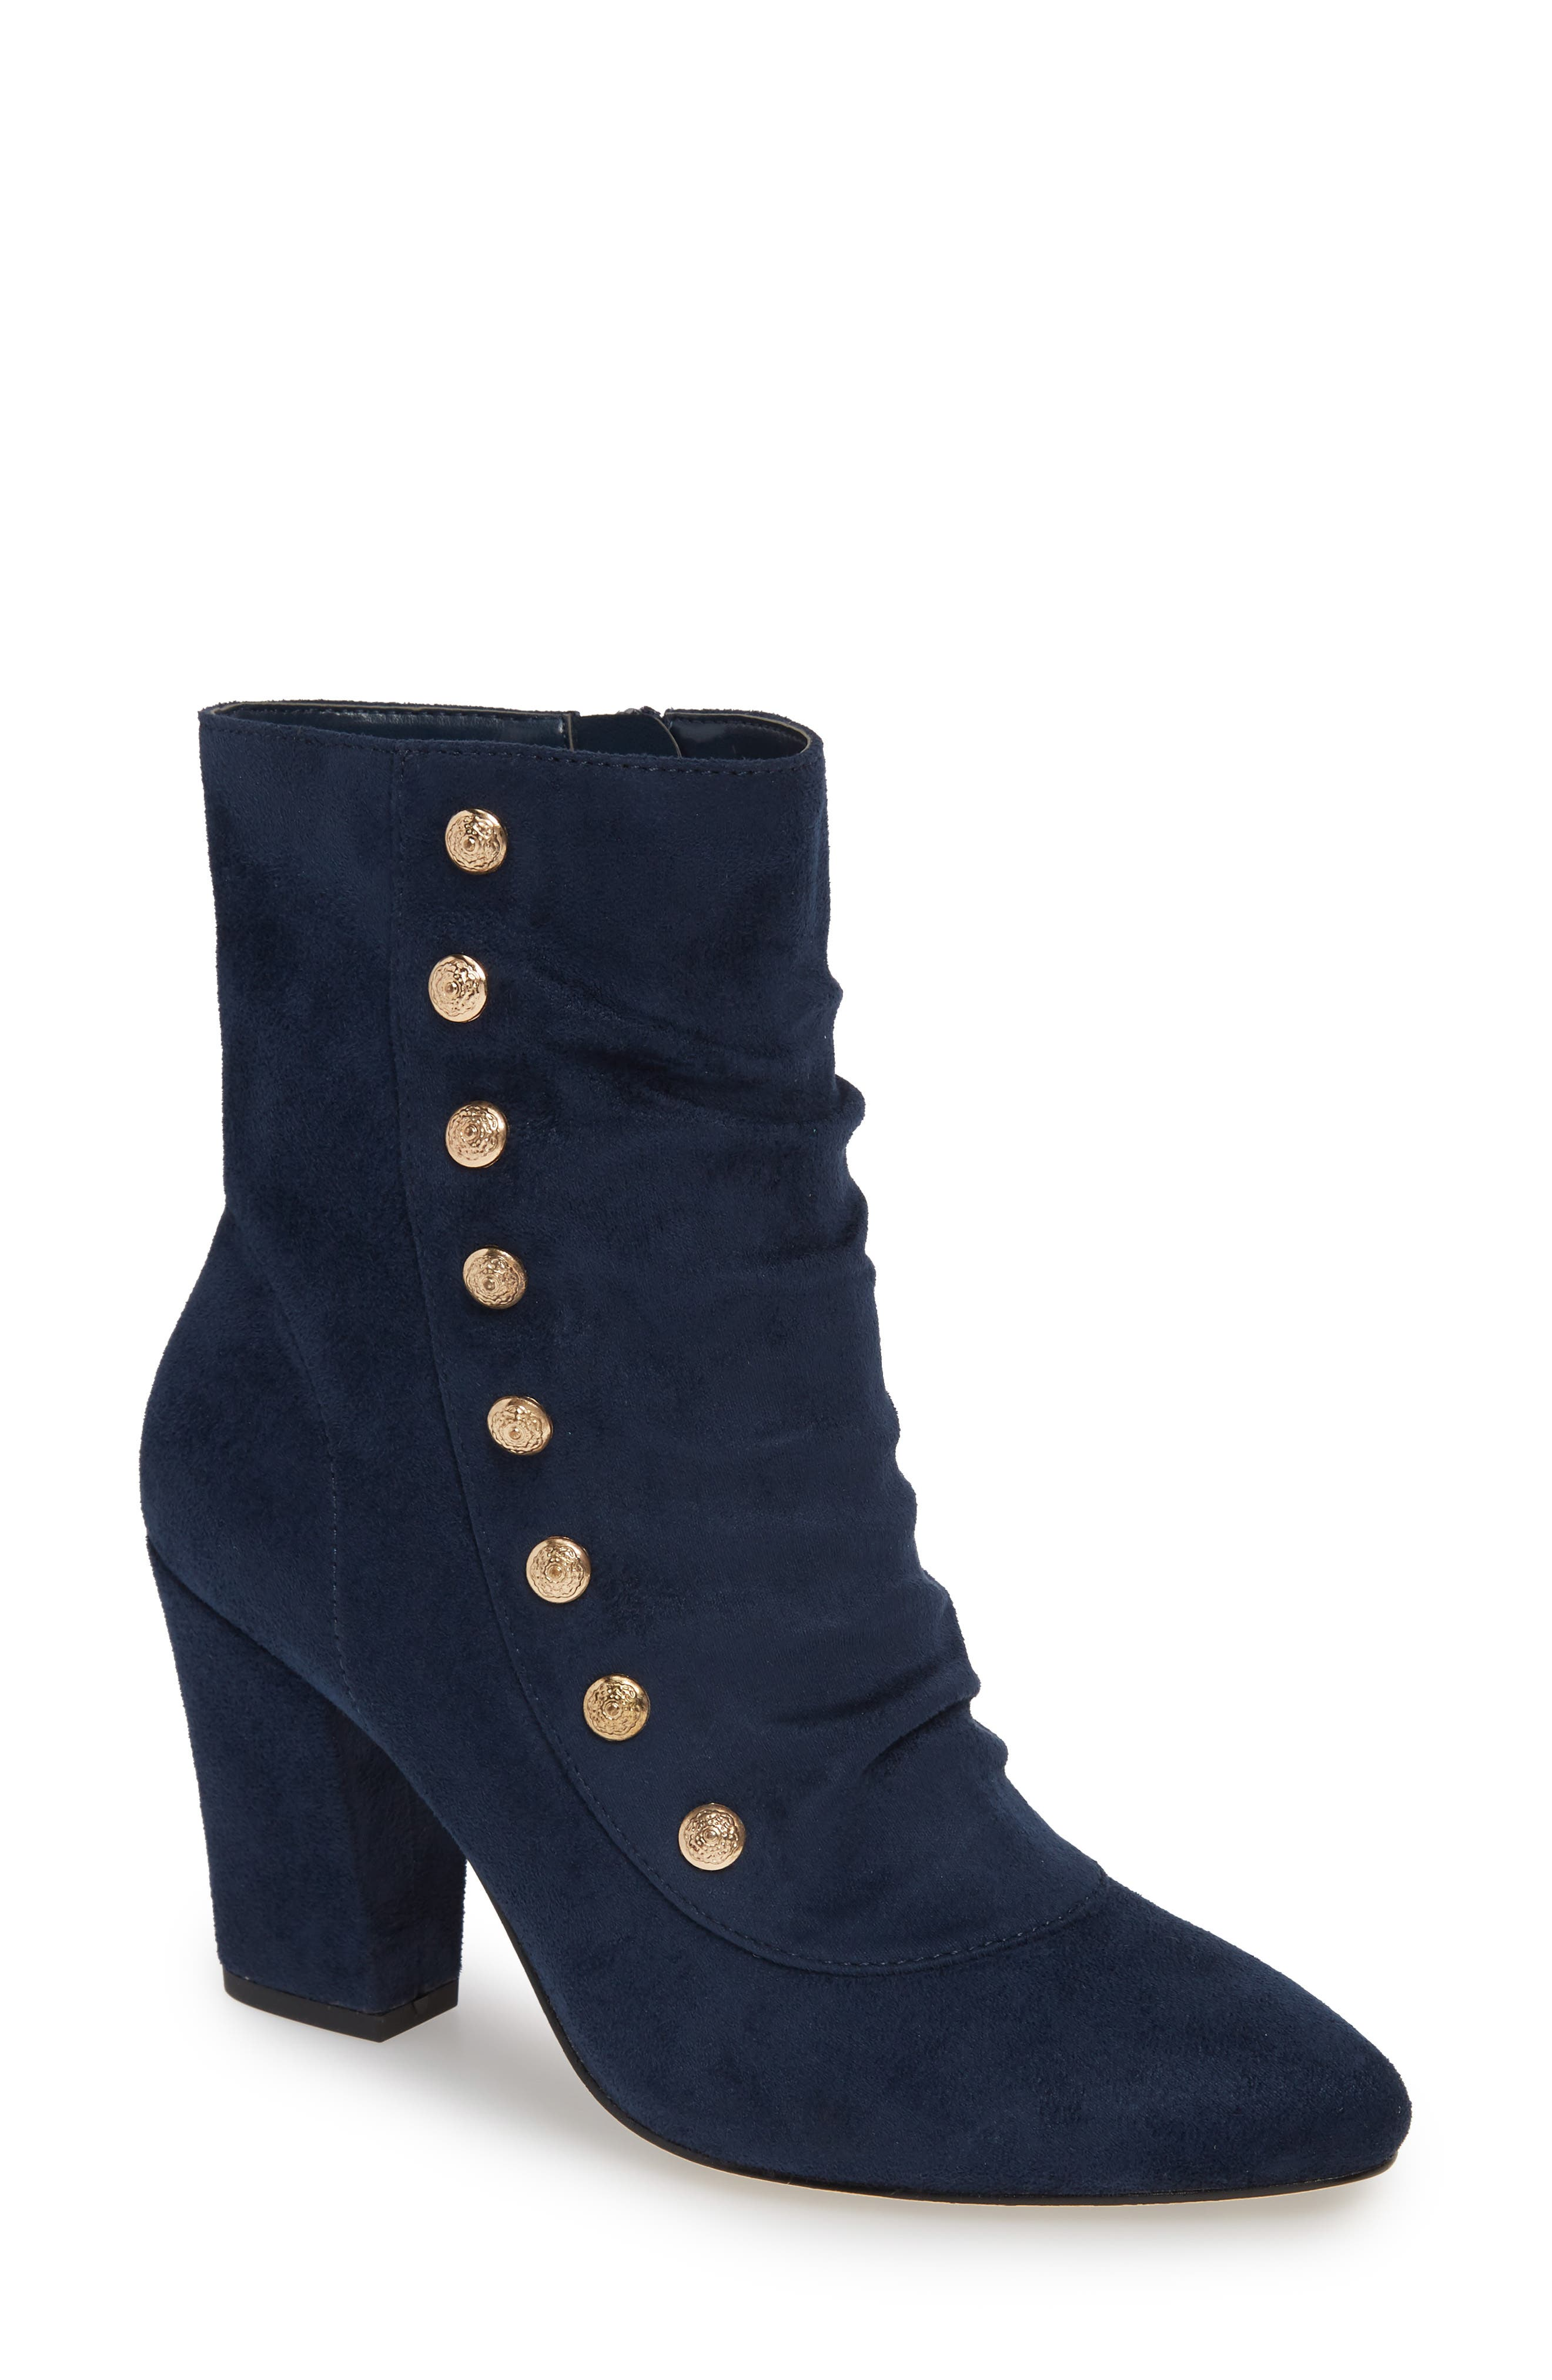 Bella Vita Gillian Ii Bootie, Blue